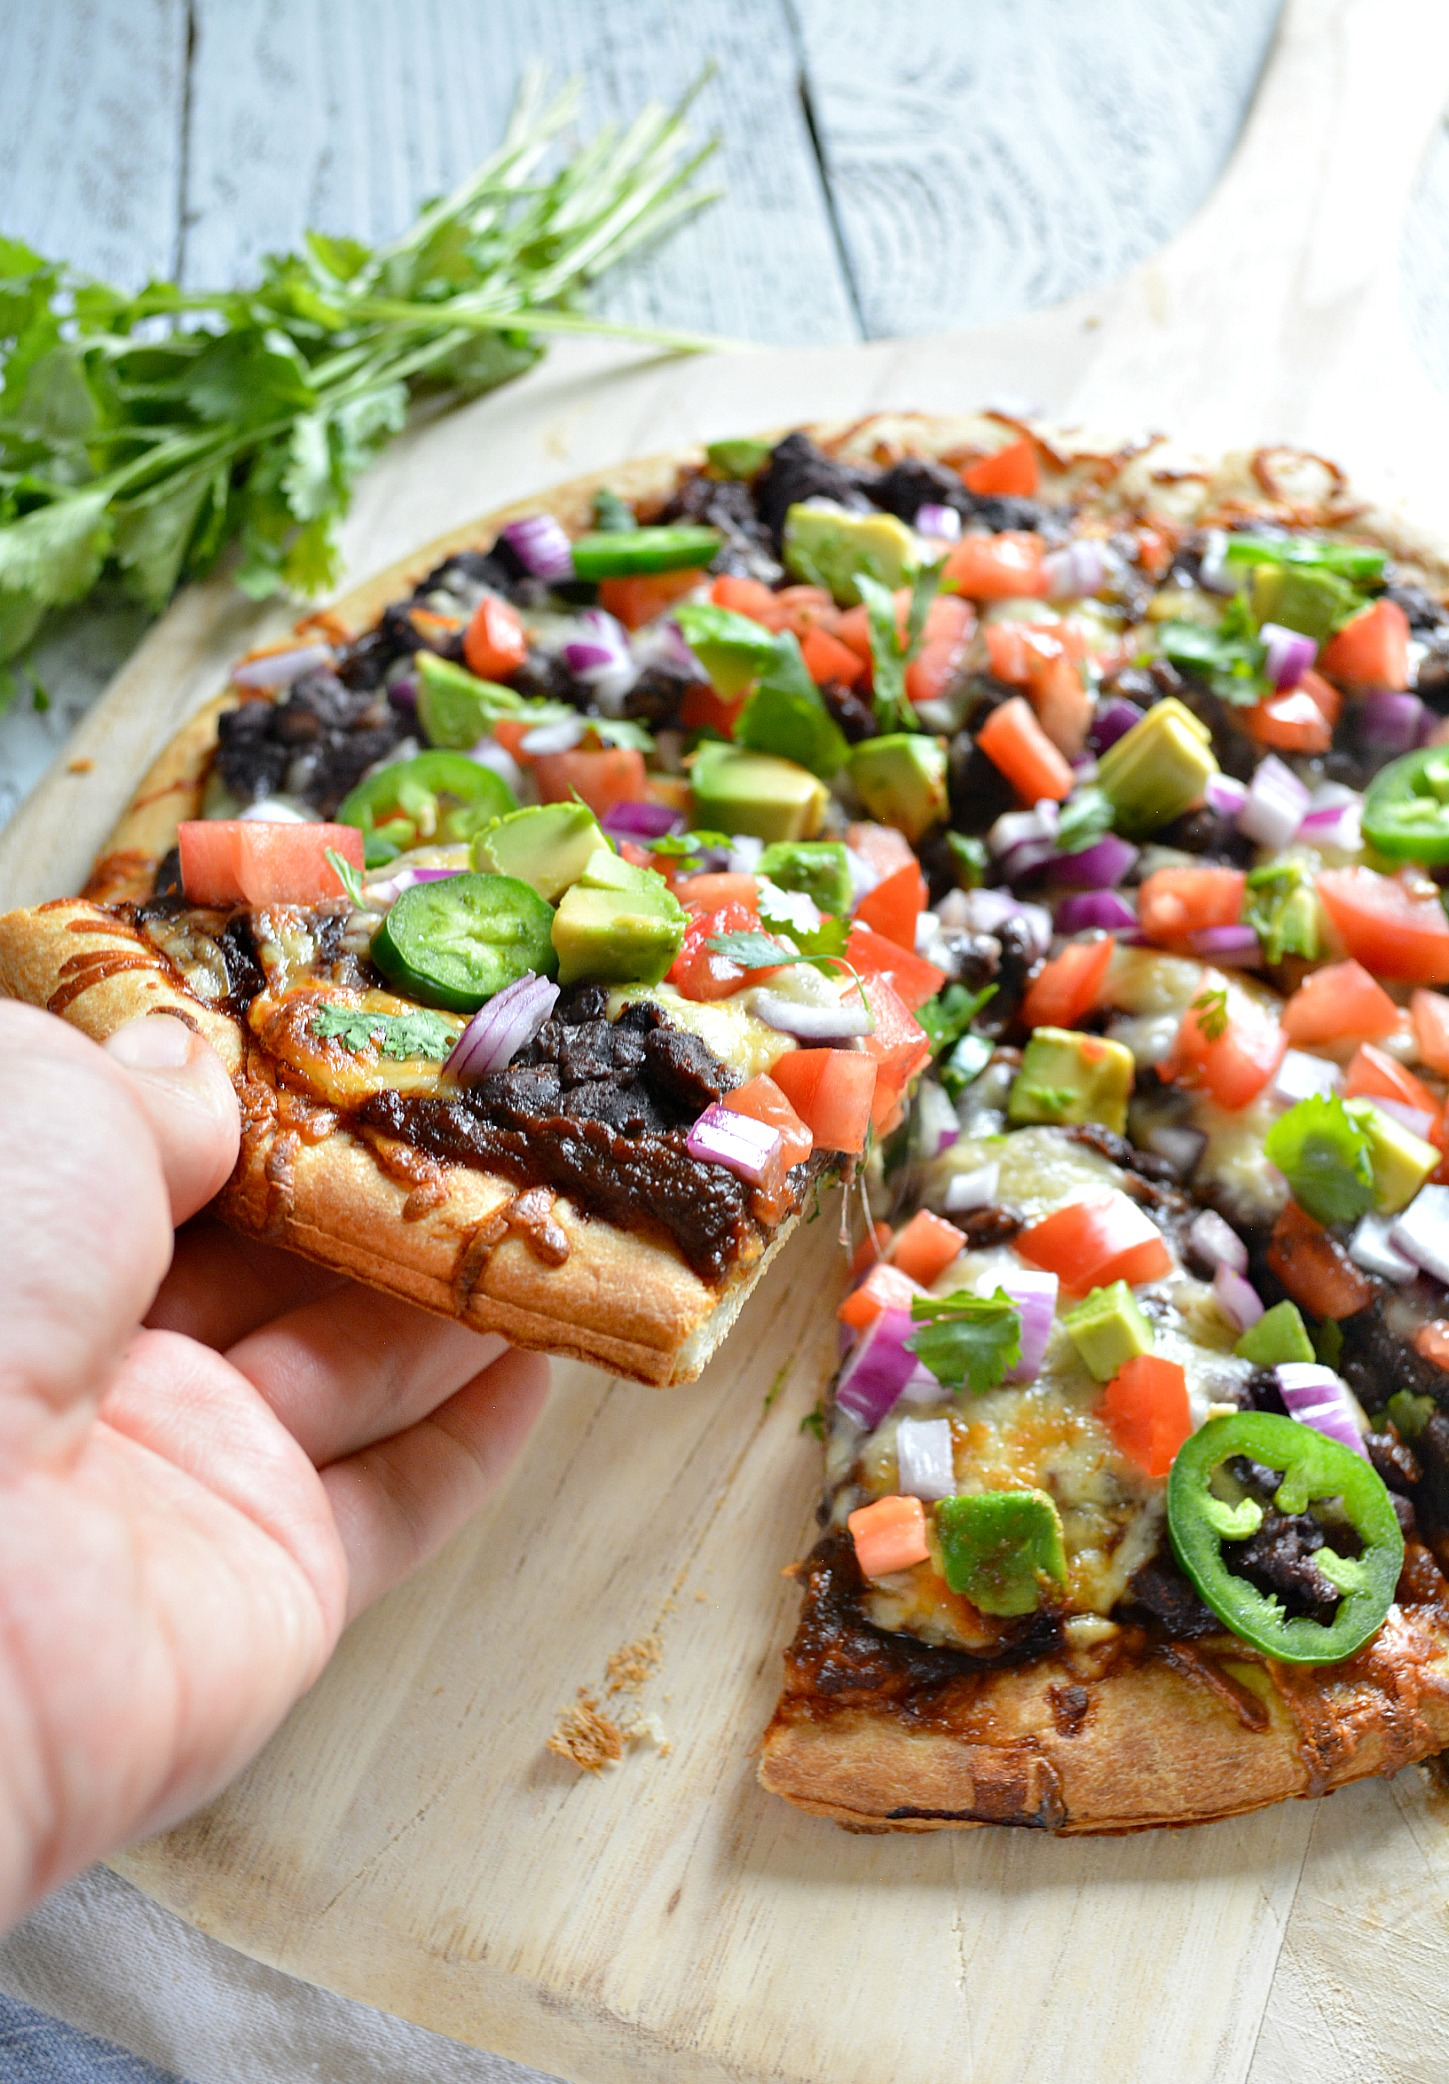 Mexican Style Pizza Featuring Better Bean Co.